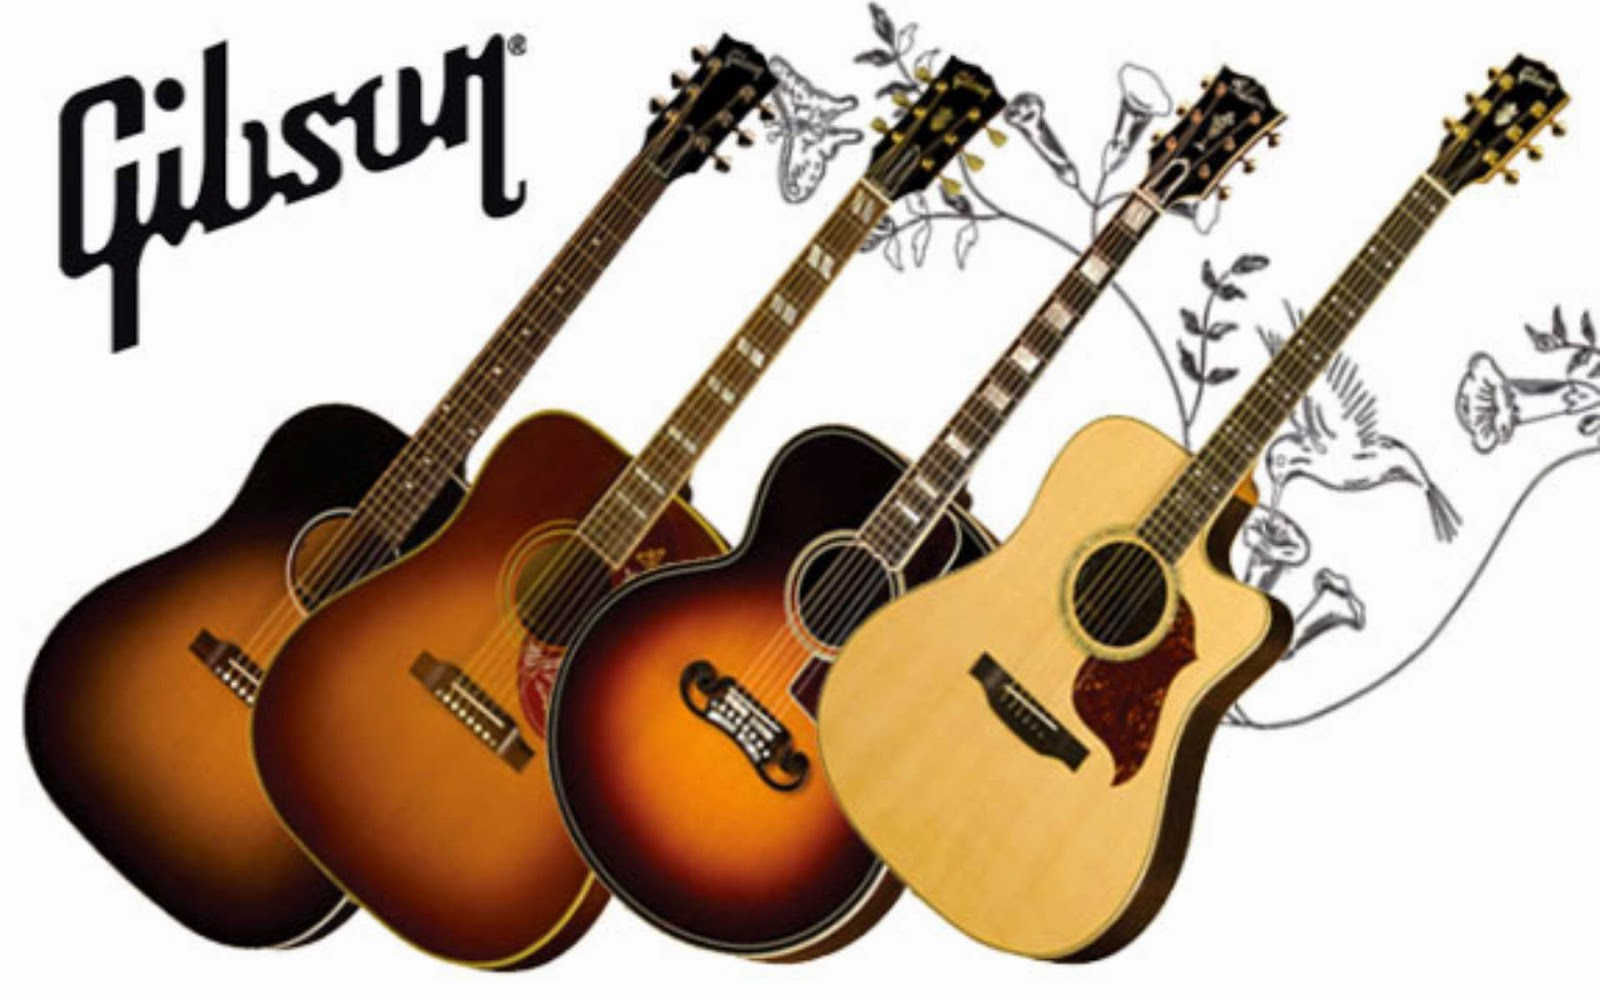 1600x1000 GibSon AcouStic GuiTar WalLpaPer Hd 1920x1200 Download Wallpaper For